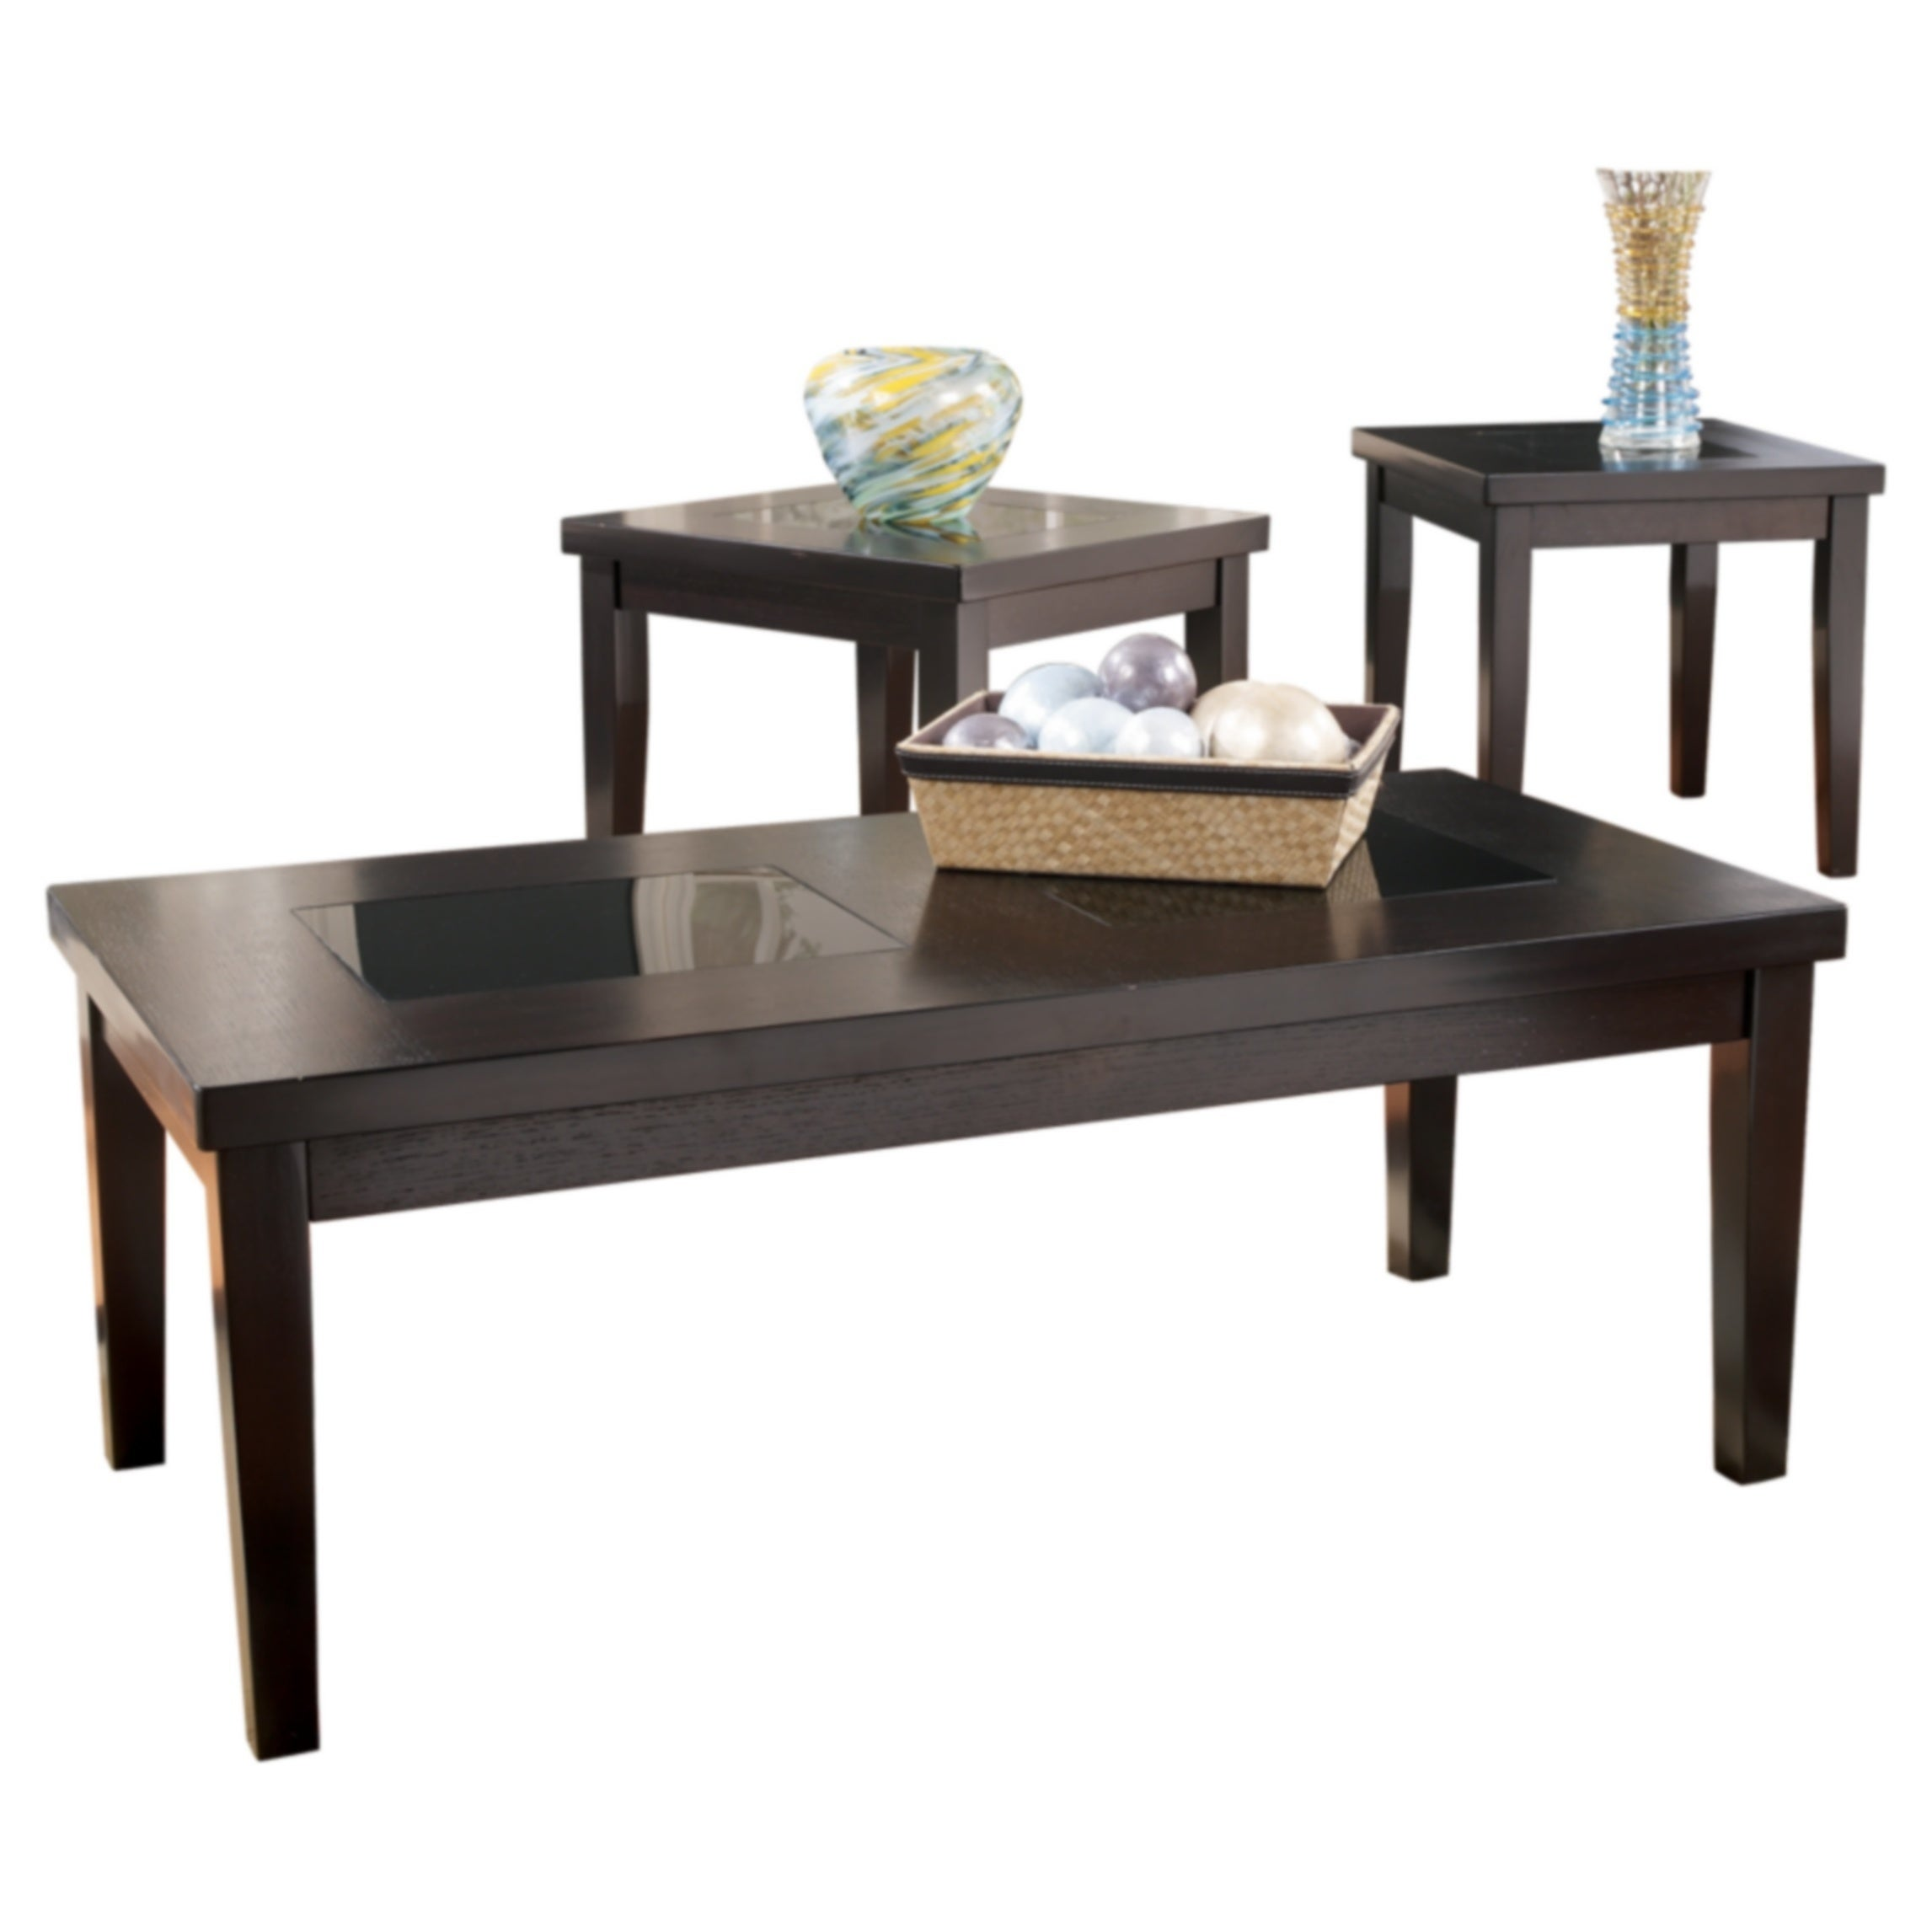 Shop Signature Designs By Ashley Denja 3 Piece Occasional Table